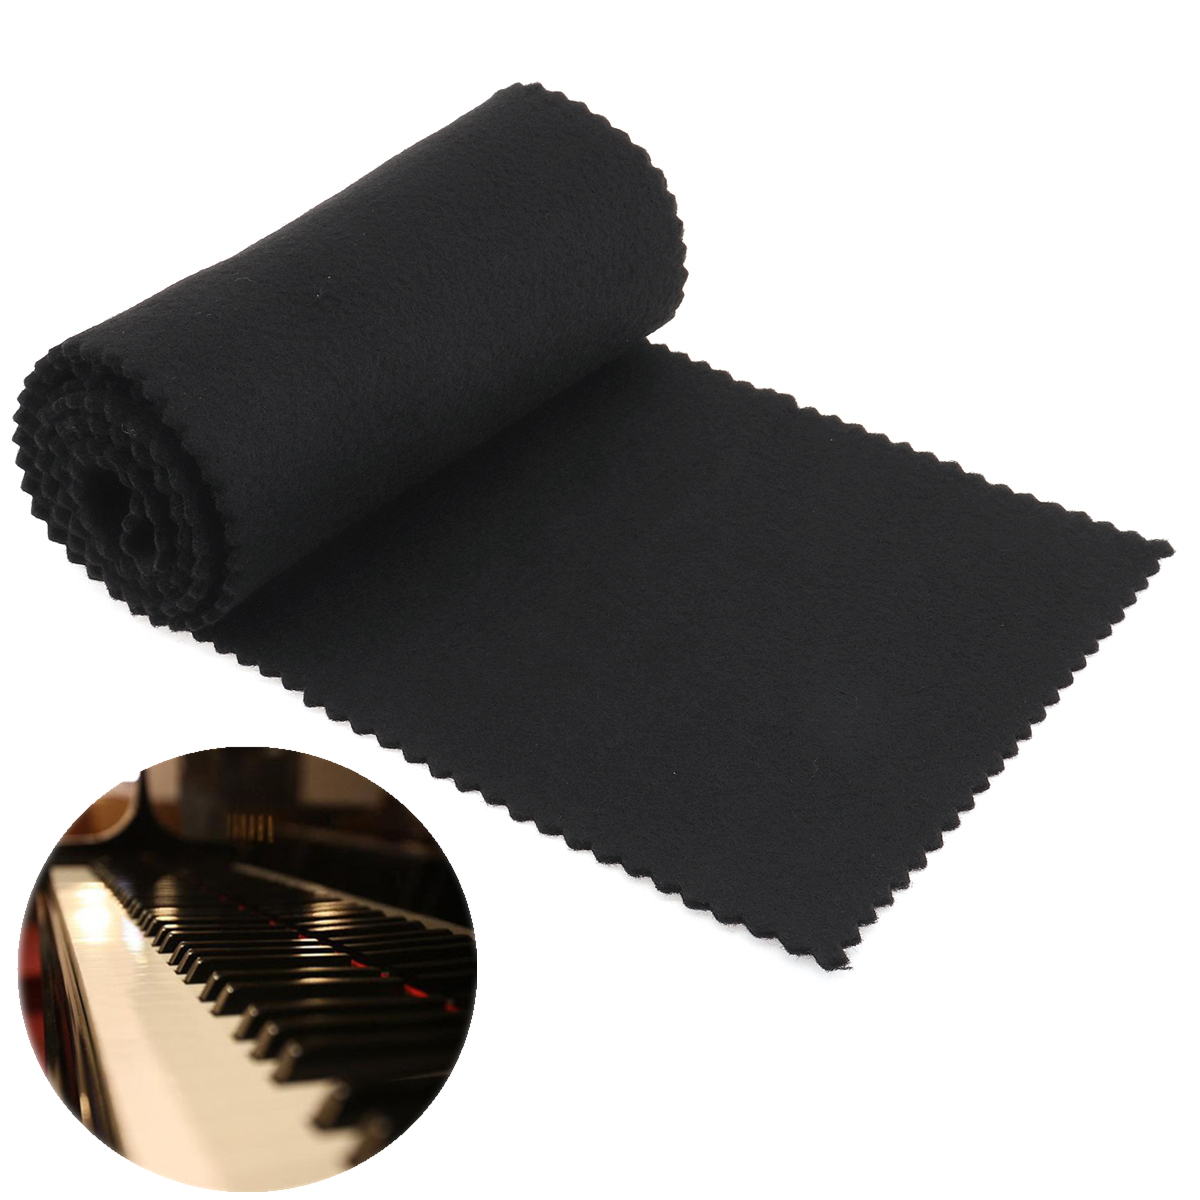 119 X 14cm High Quality Nylon + Cotton Black Soft Piano Keys Cover Keyboard Dust Covers For Any 88 Keys Piano Or Keyboard